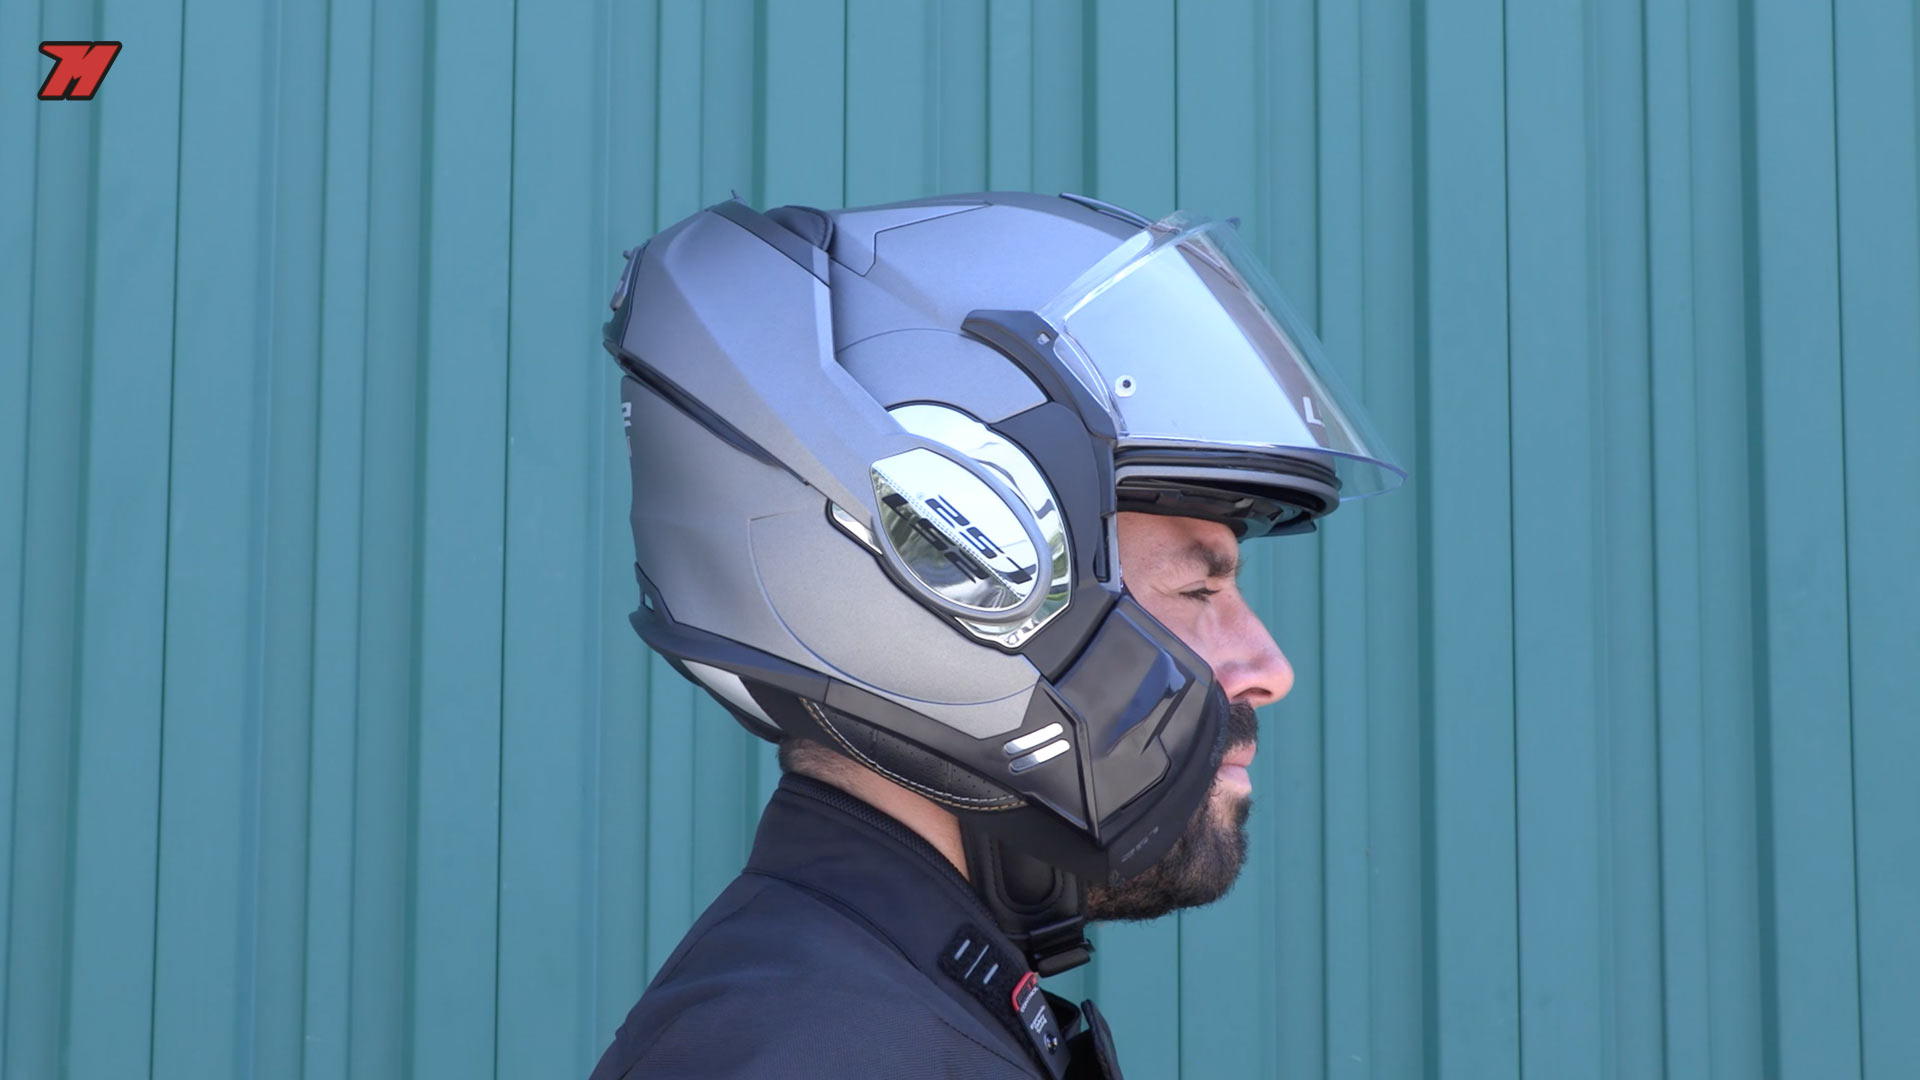 Ls2 Helmet Review: Ls2 Ff399 Valiant, The Most Popular Modular Helmet